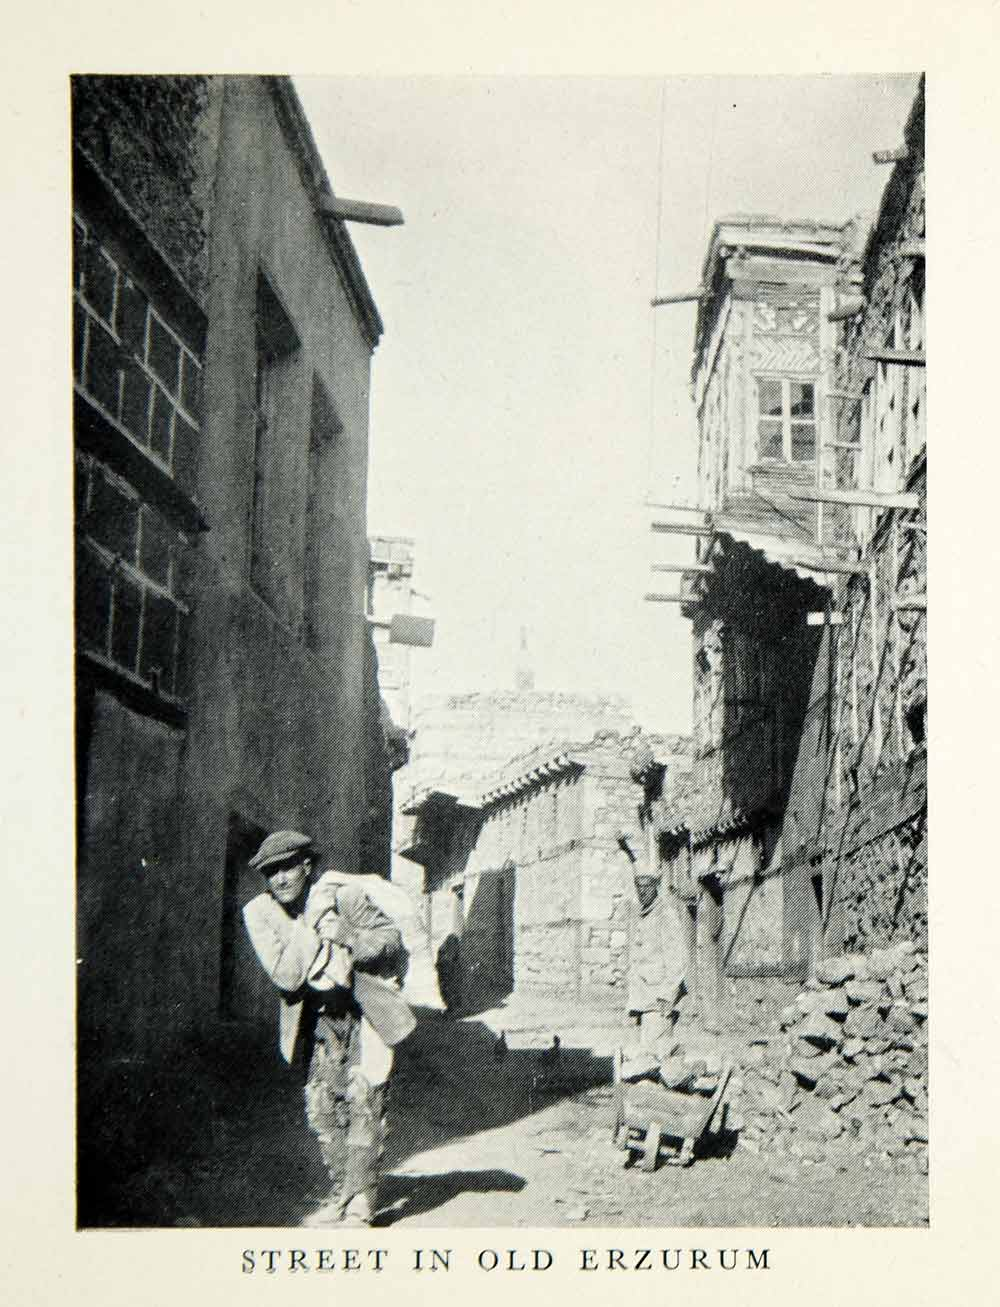 1952 Print Old Erzurum Turkey Middle East Cityscape Street Scene XGDD7